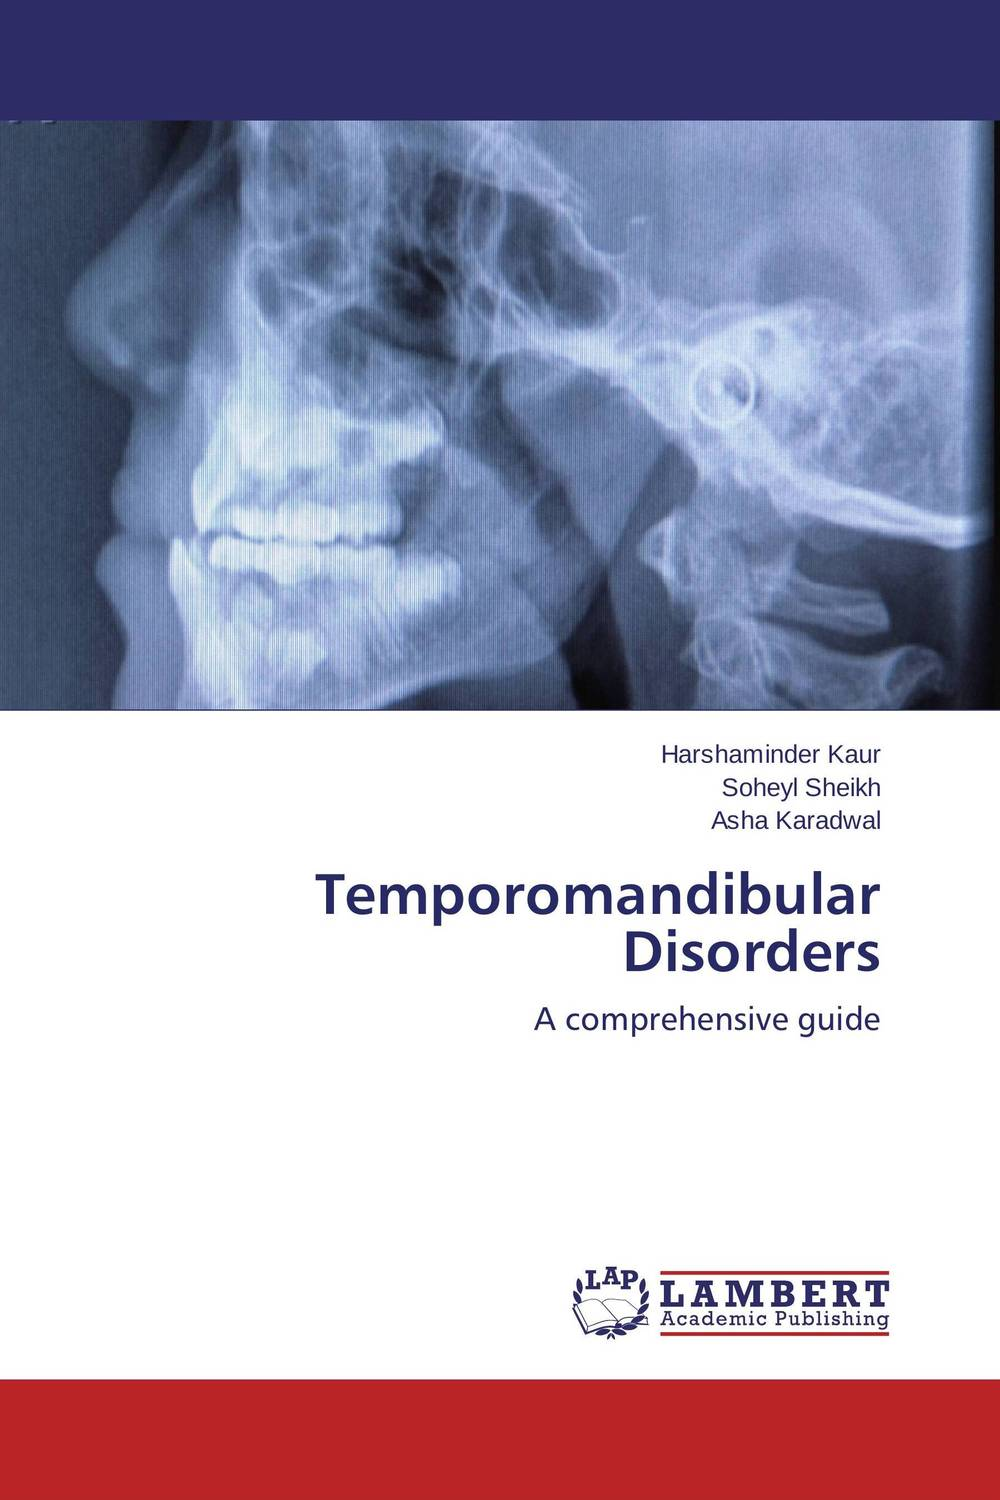 Temporomandibular Disorders temporomandibular disorder